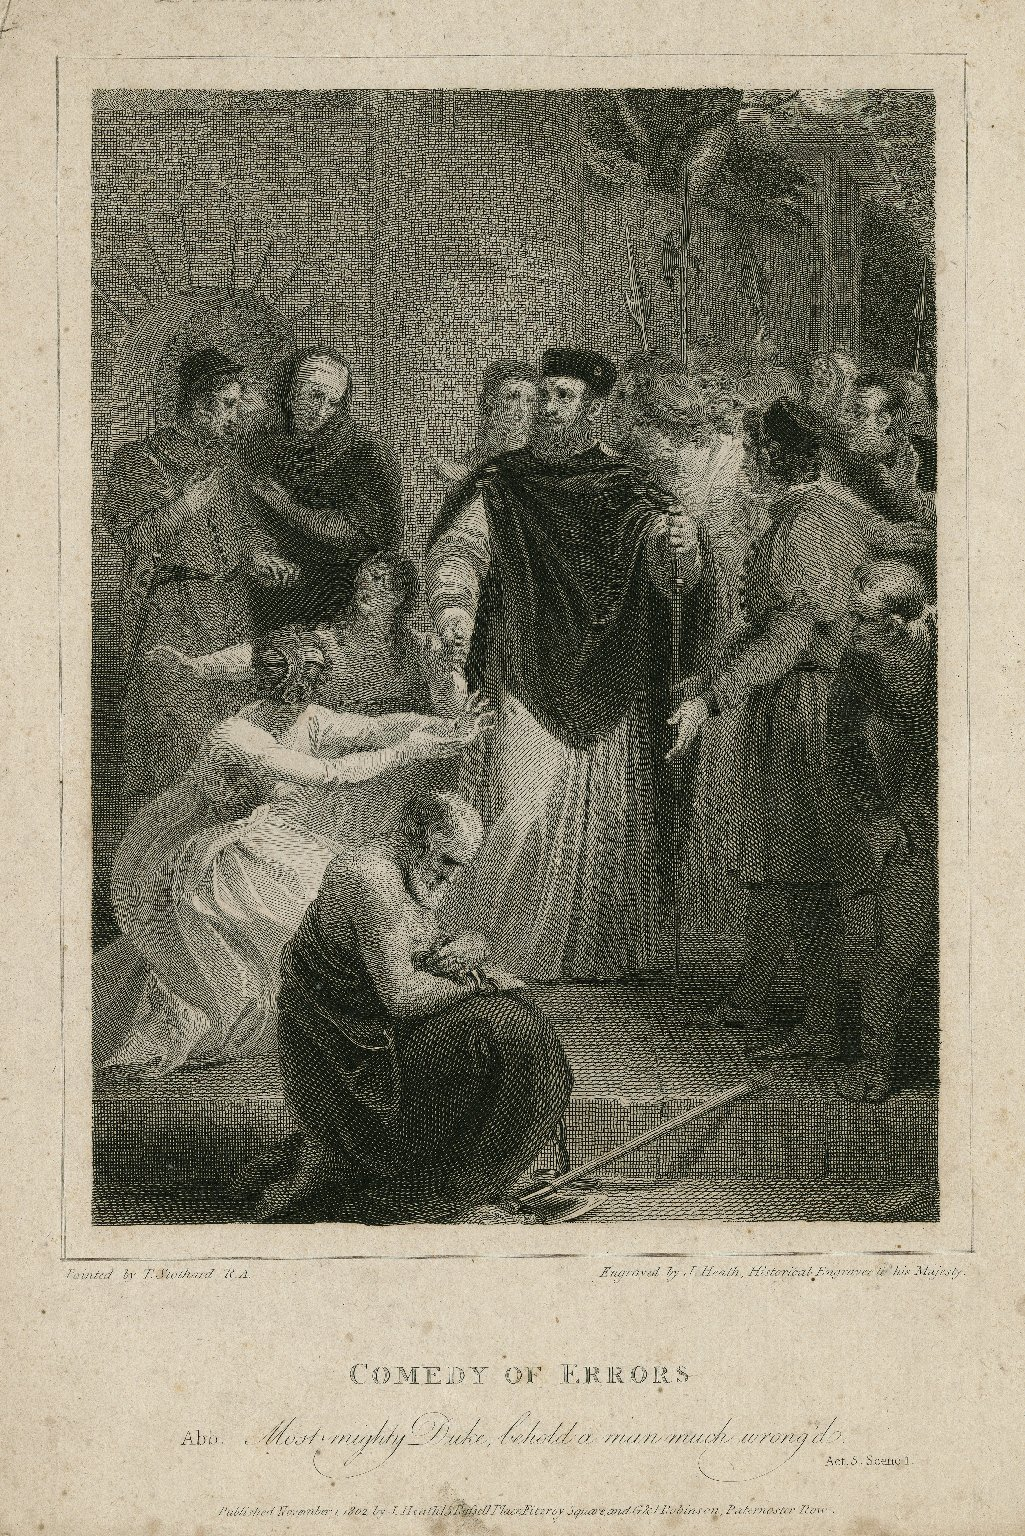 Comedy of errors, Abb.: Most mighty Duke, behold a man much wrong'd, act 5, scene 1 [graphic] / painted by T. Stothard R.A. ; engraved by J. Heath.